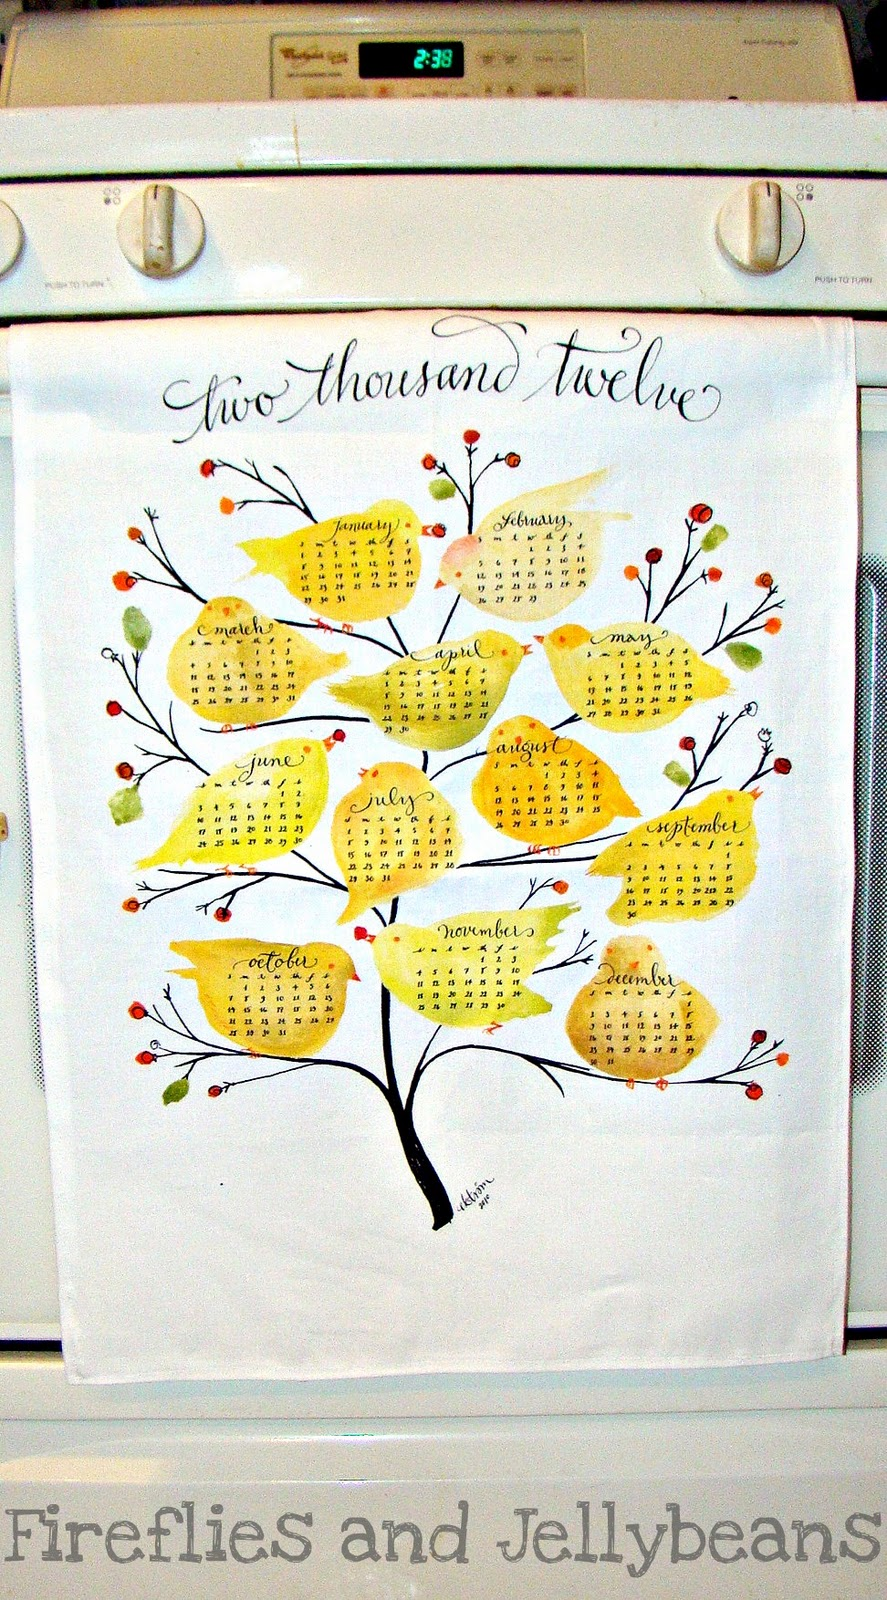 I Also Ordered A Personalize Fabric To Make A Hand Towel To Add To The  Calendar To Complete The Gift. {you Can Use Picnik To Create Your Own  Patterns Or You ...